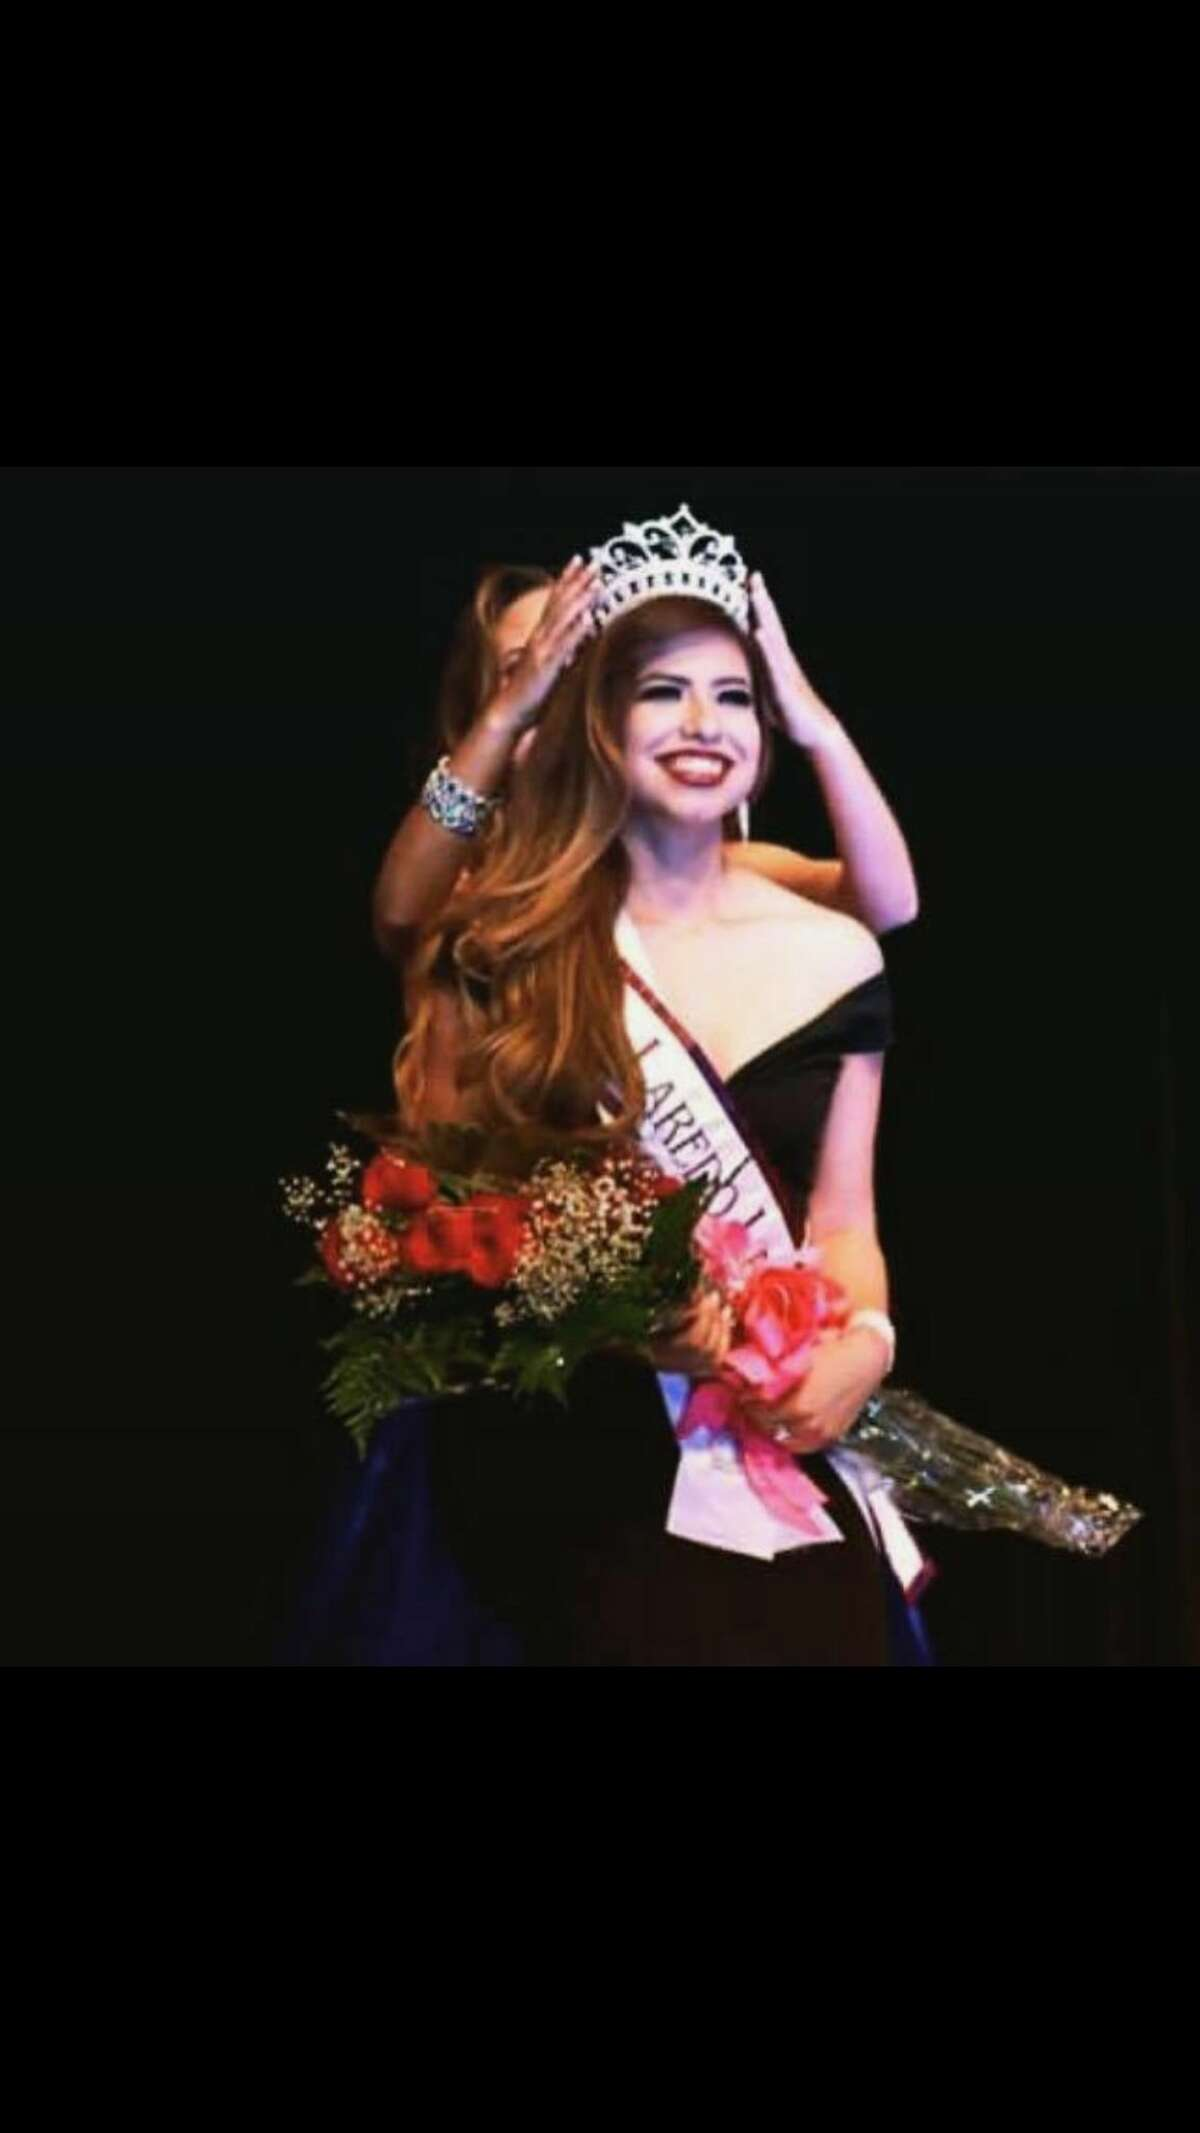 Kennya Navarro, who was crowned Miss Laredo Latina in 2017, is off to compete for the prestigious title of Miss Texas Latina this weekend.